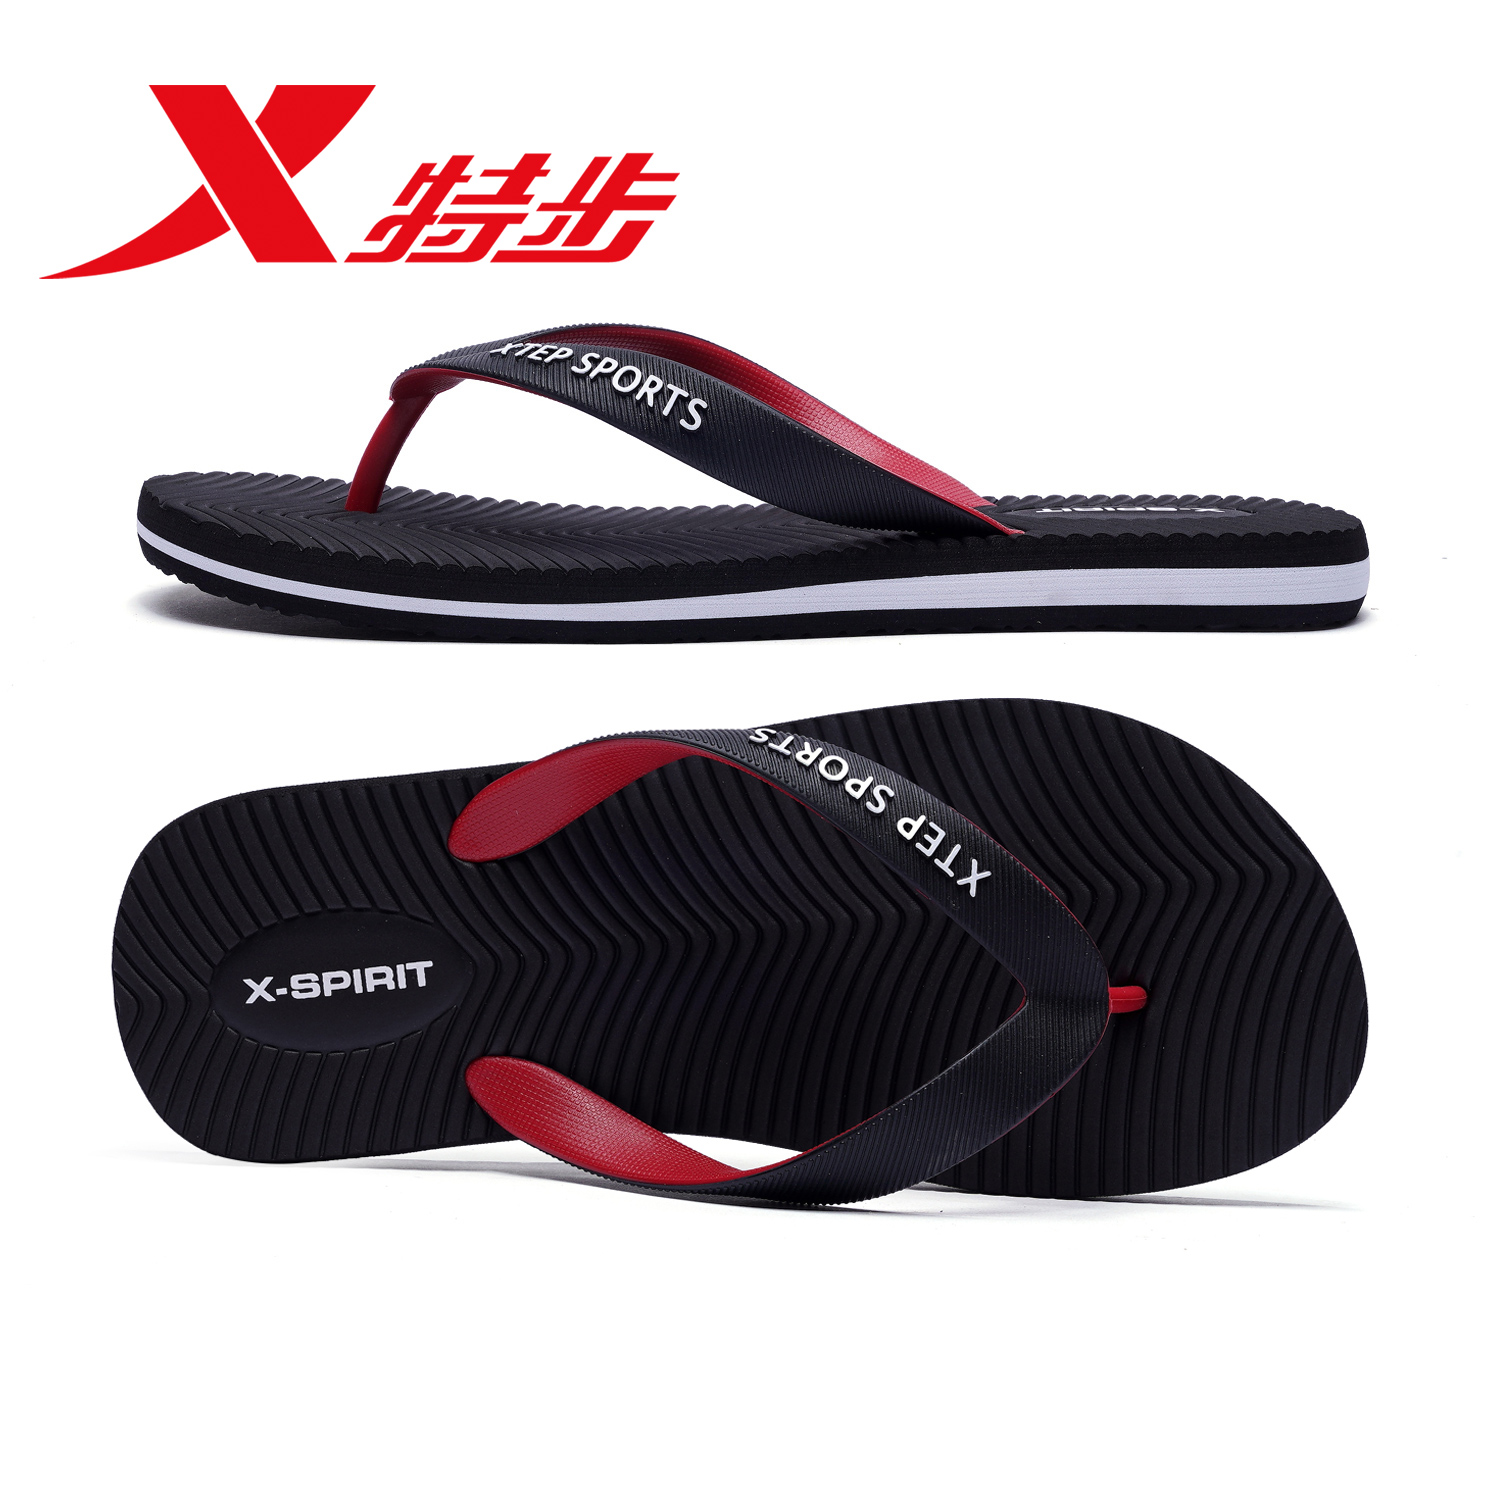 a188a03ff11a Special step Men s sports slippers 2018 summer new flip flops non-slip  wear-resistant lightweight comfortable men s shoes beach shoes